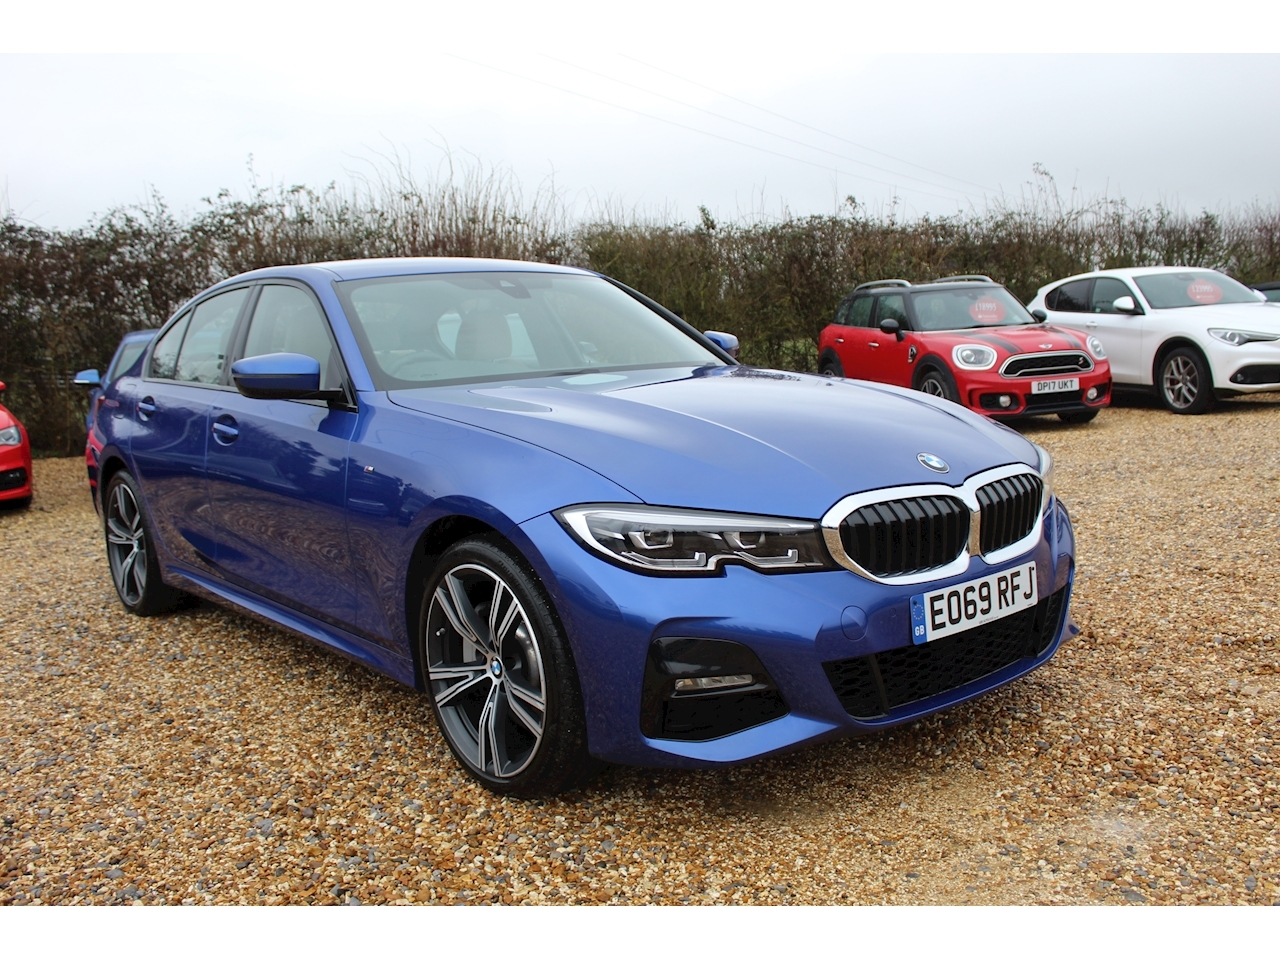 BMW 2.0 330e 12kWh M Sport Saloon 4dr Petrol Plug-in Hybrid Auto (s/s) (292 ps)